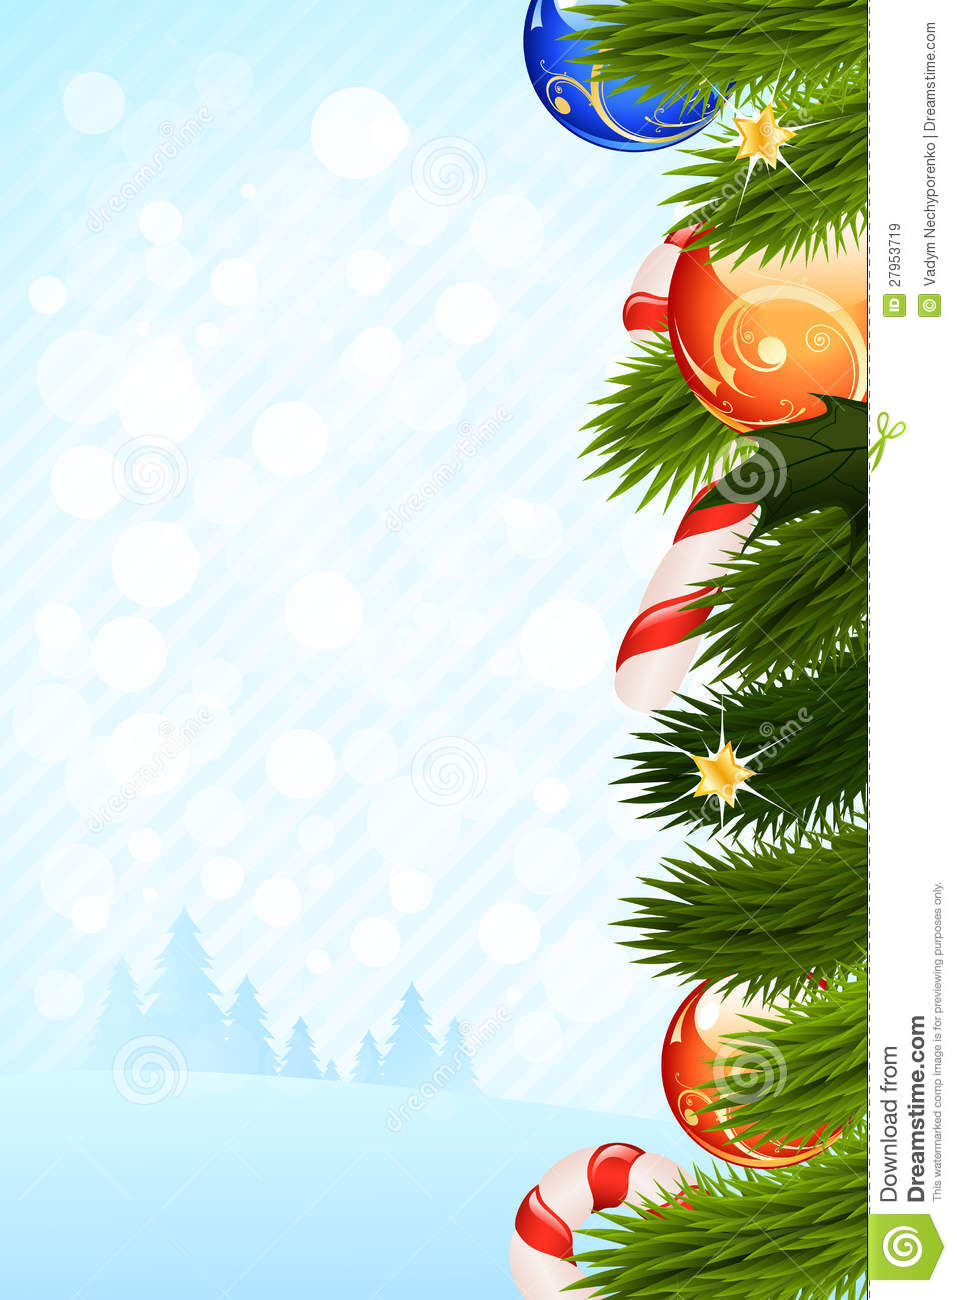 christmas card template stock vector illustration of ball 27953719